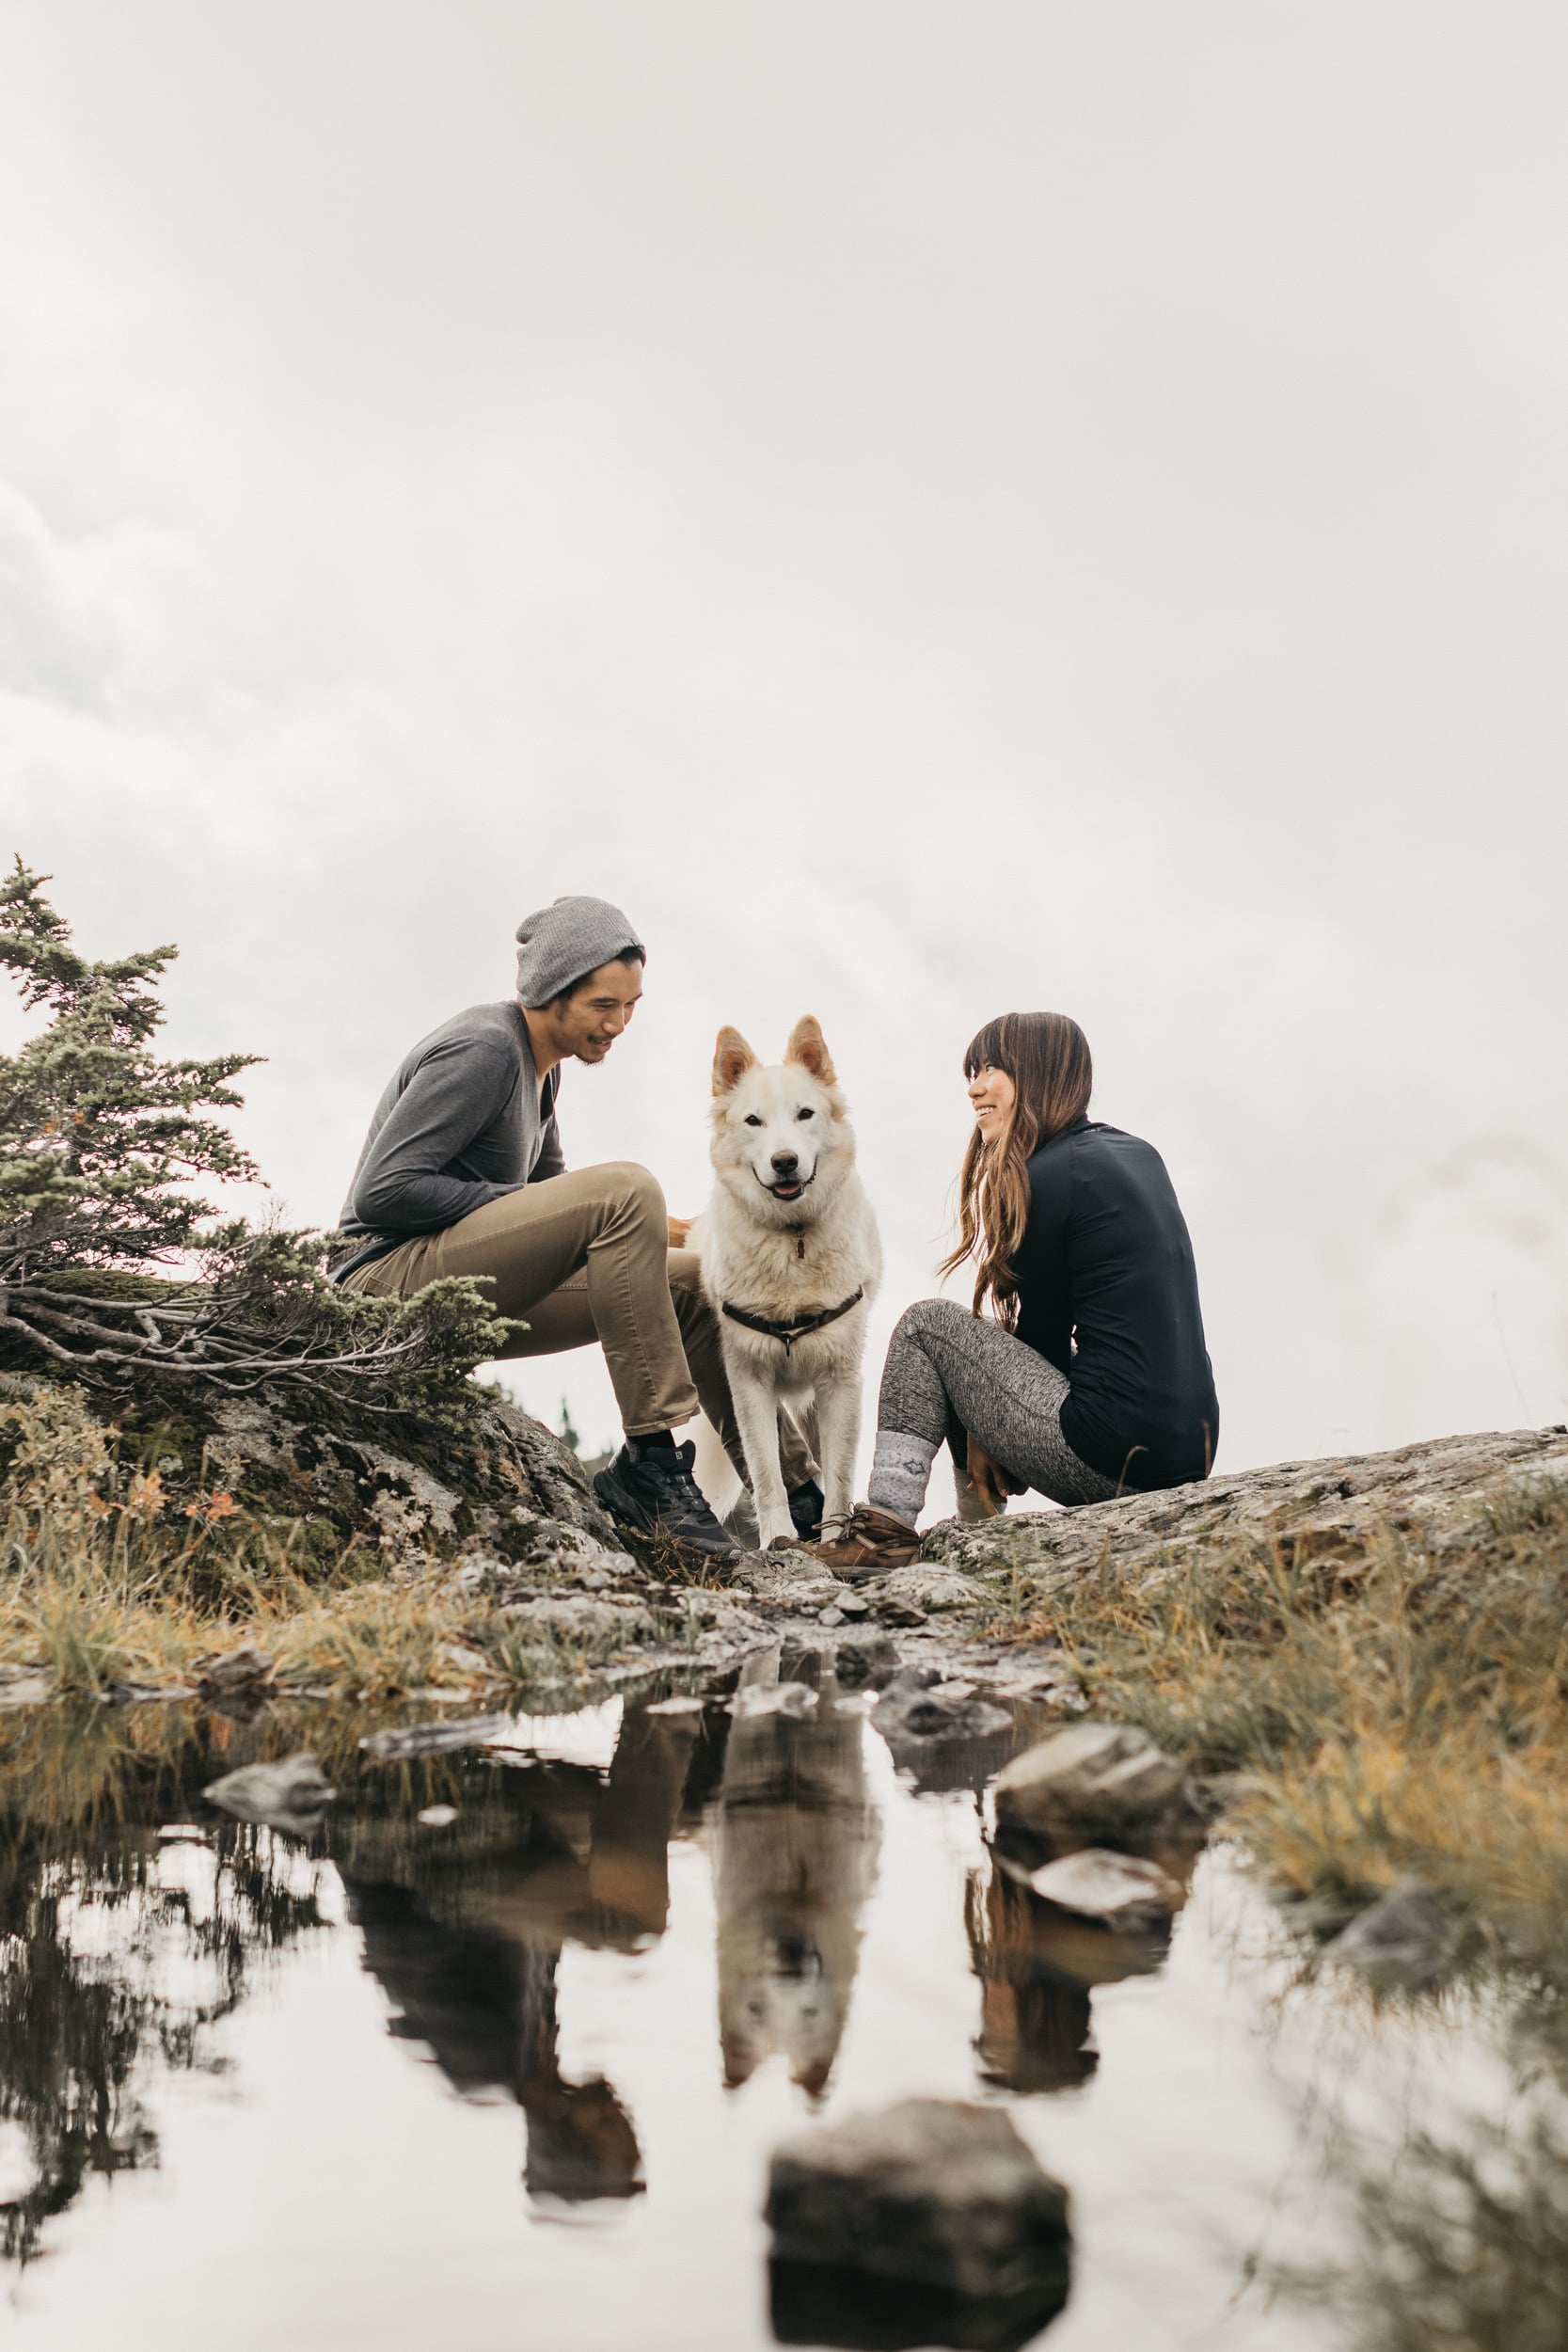 David, Justina and Nazko on top of Mount Seymour with their reflections in a pool of water